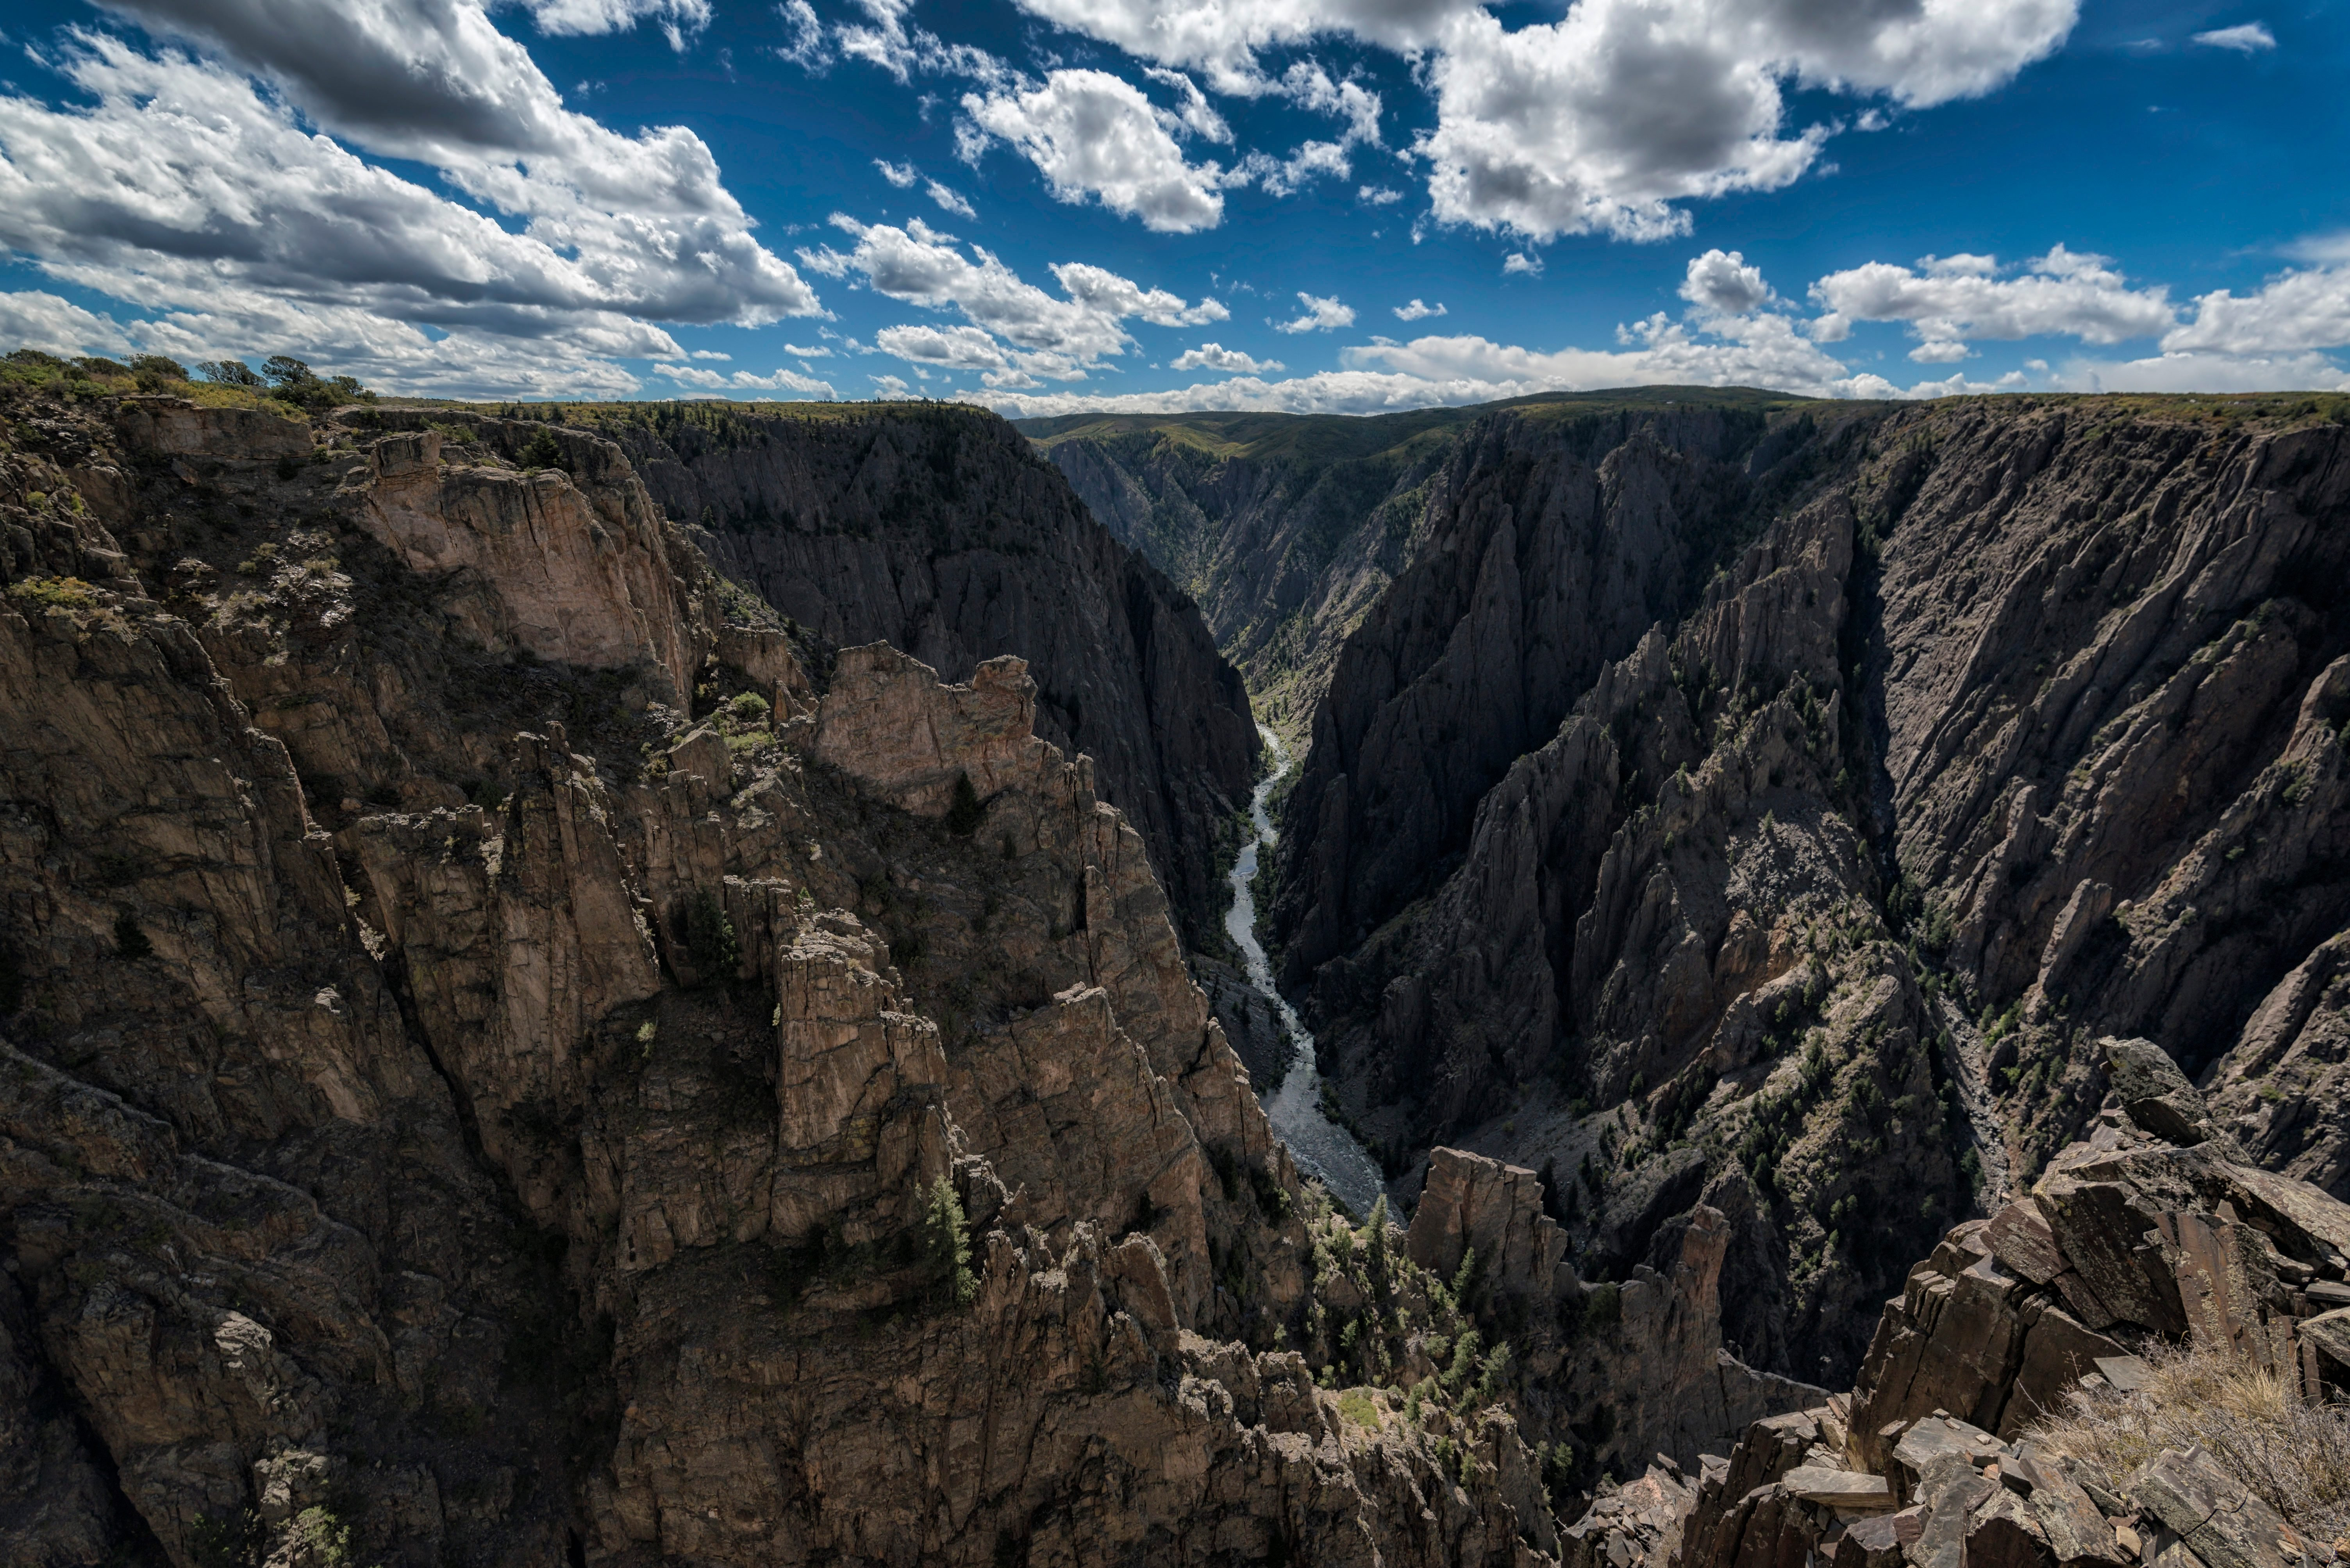 Gunnison river passing through canyons against sky